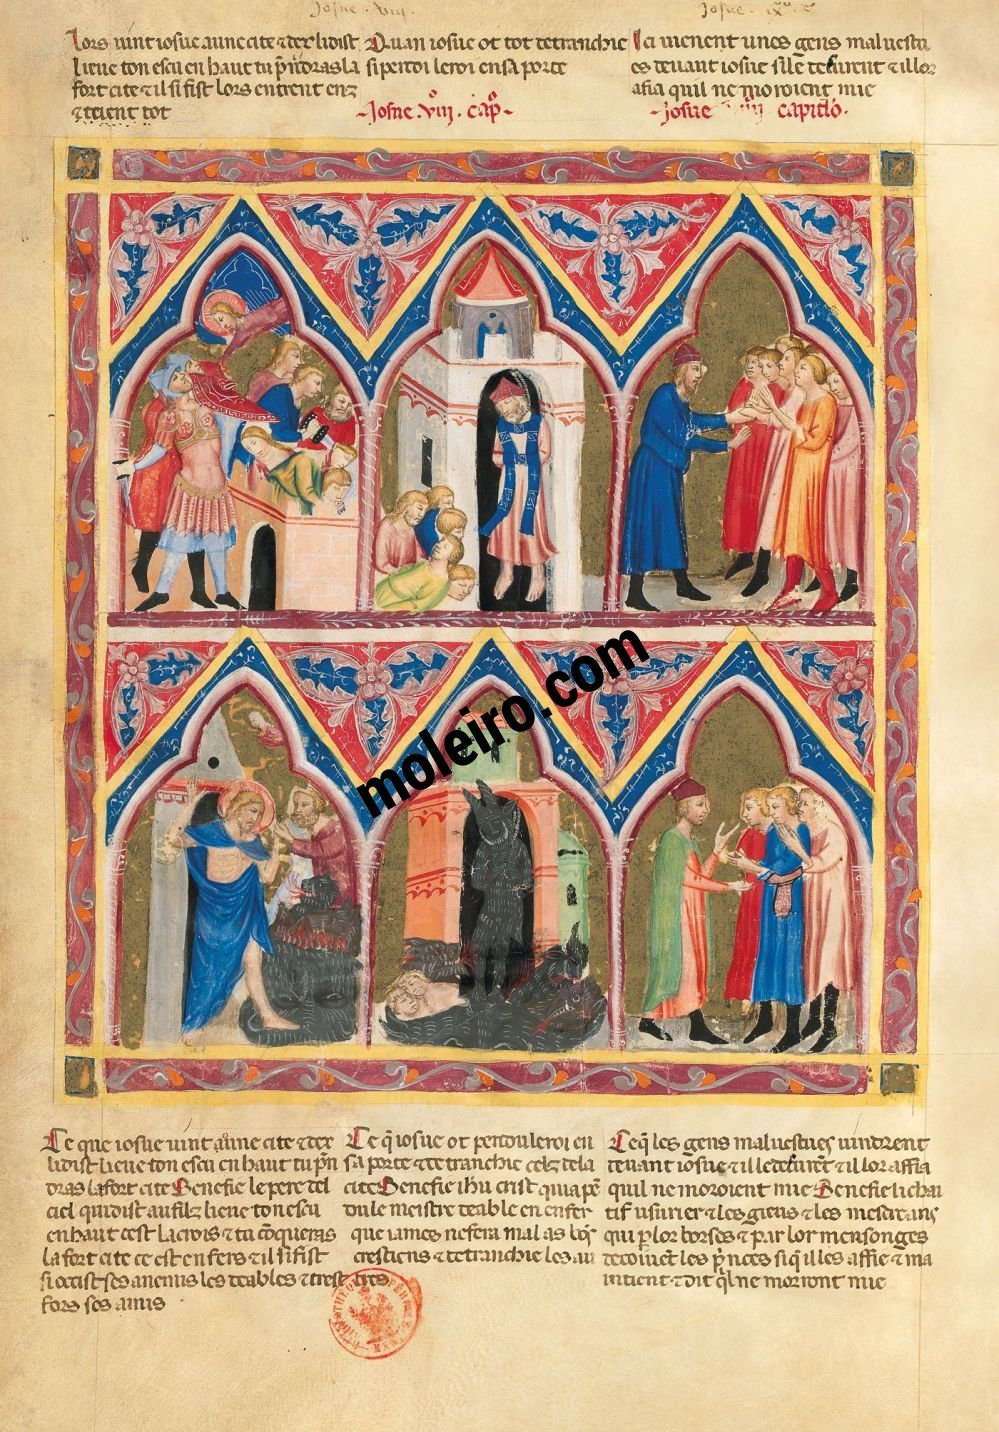 Bible moralisée of Naples f. 106v (Josh. 8: 1-29 and 9: 1-15)